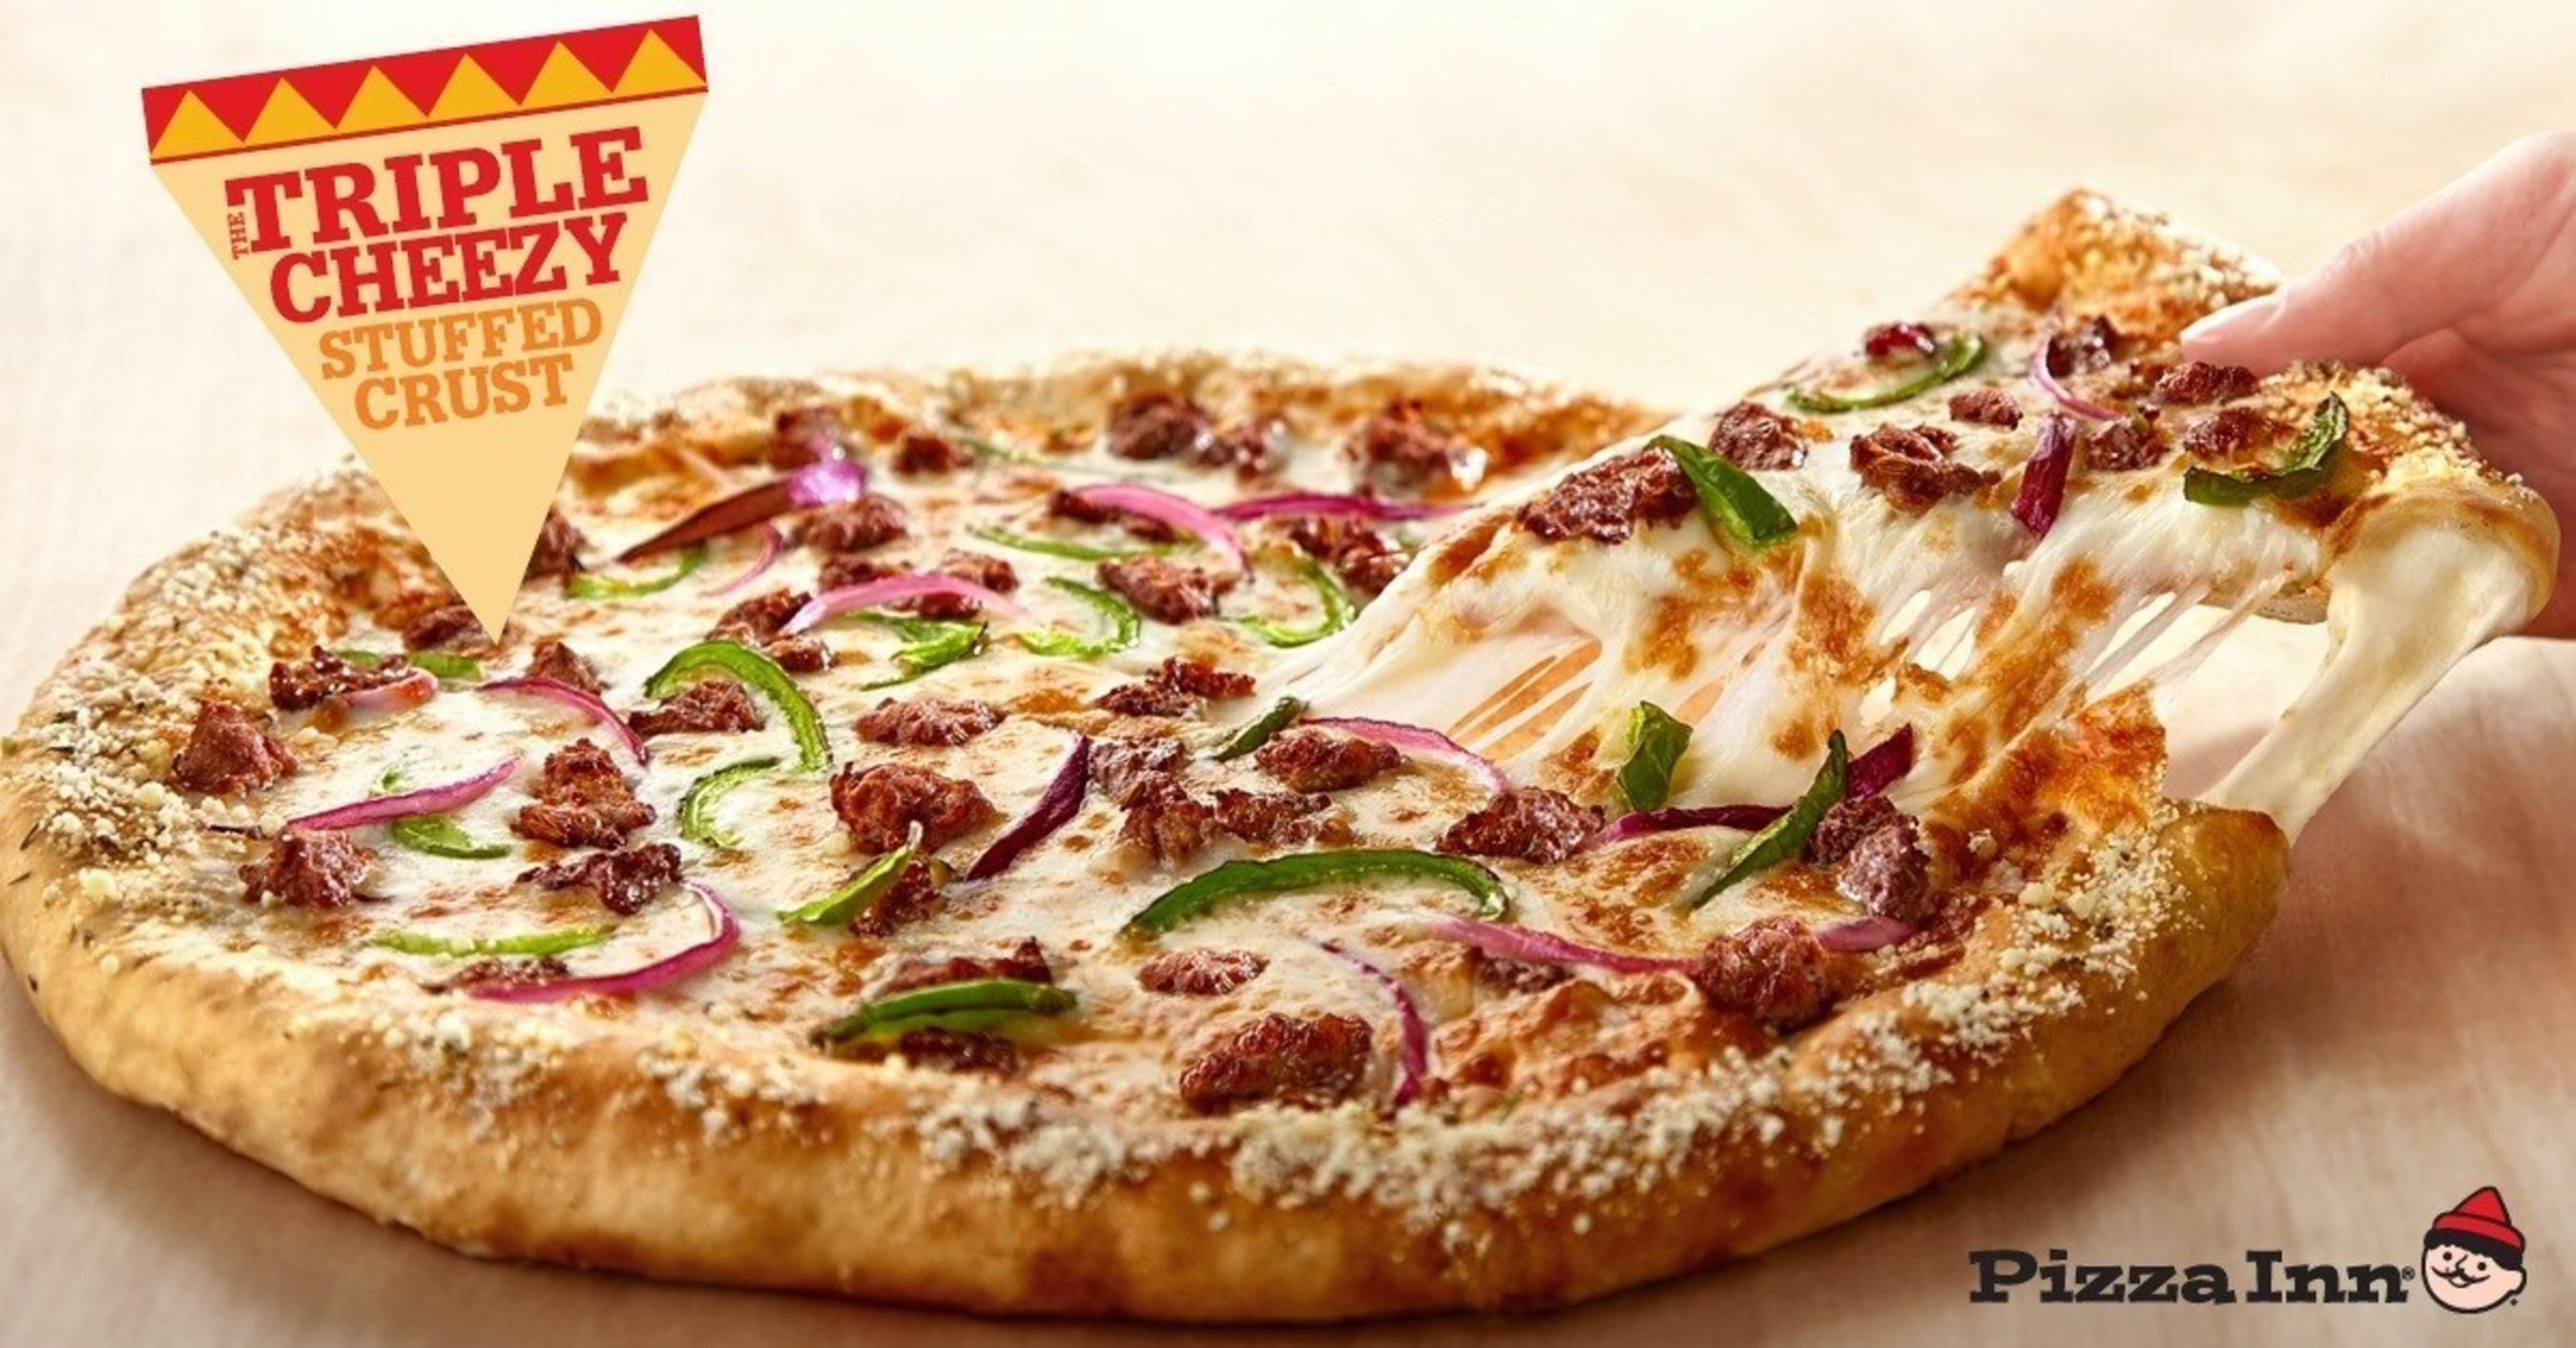 Just in time for National Pizza Month, Pizza Inn releases survey on American's pizza crust habits